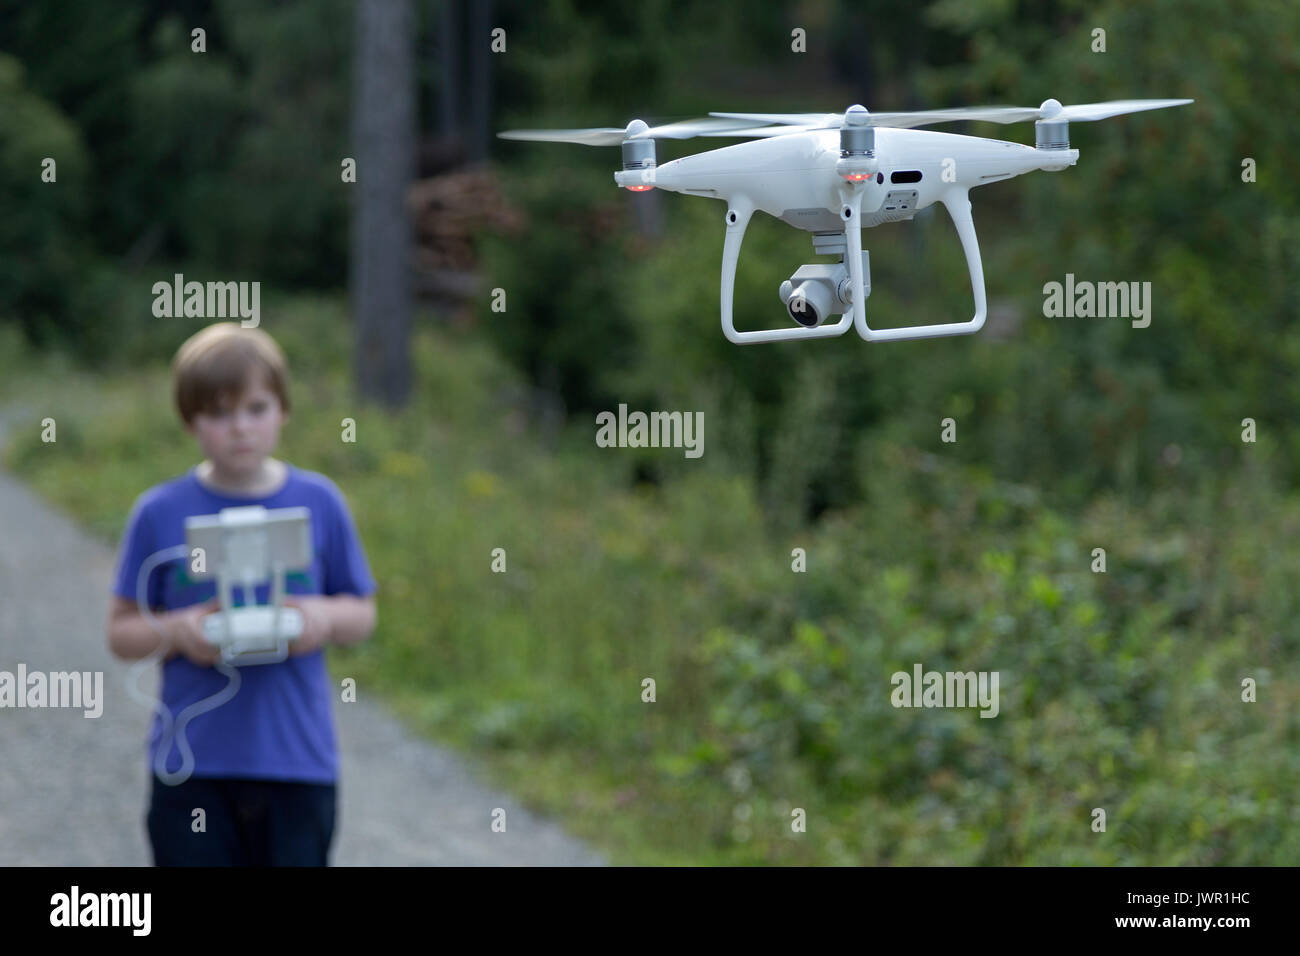 Young boy flying a drone - Stock Image